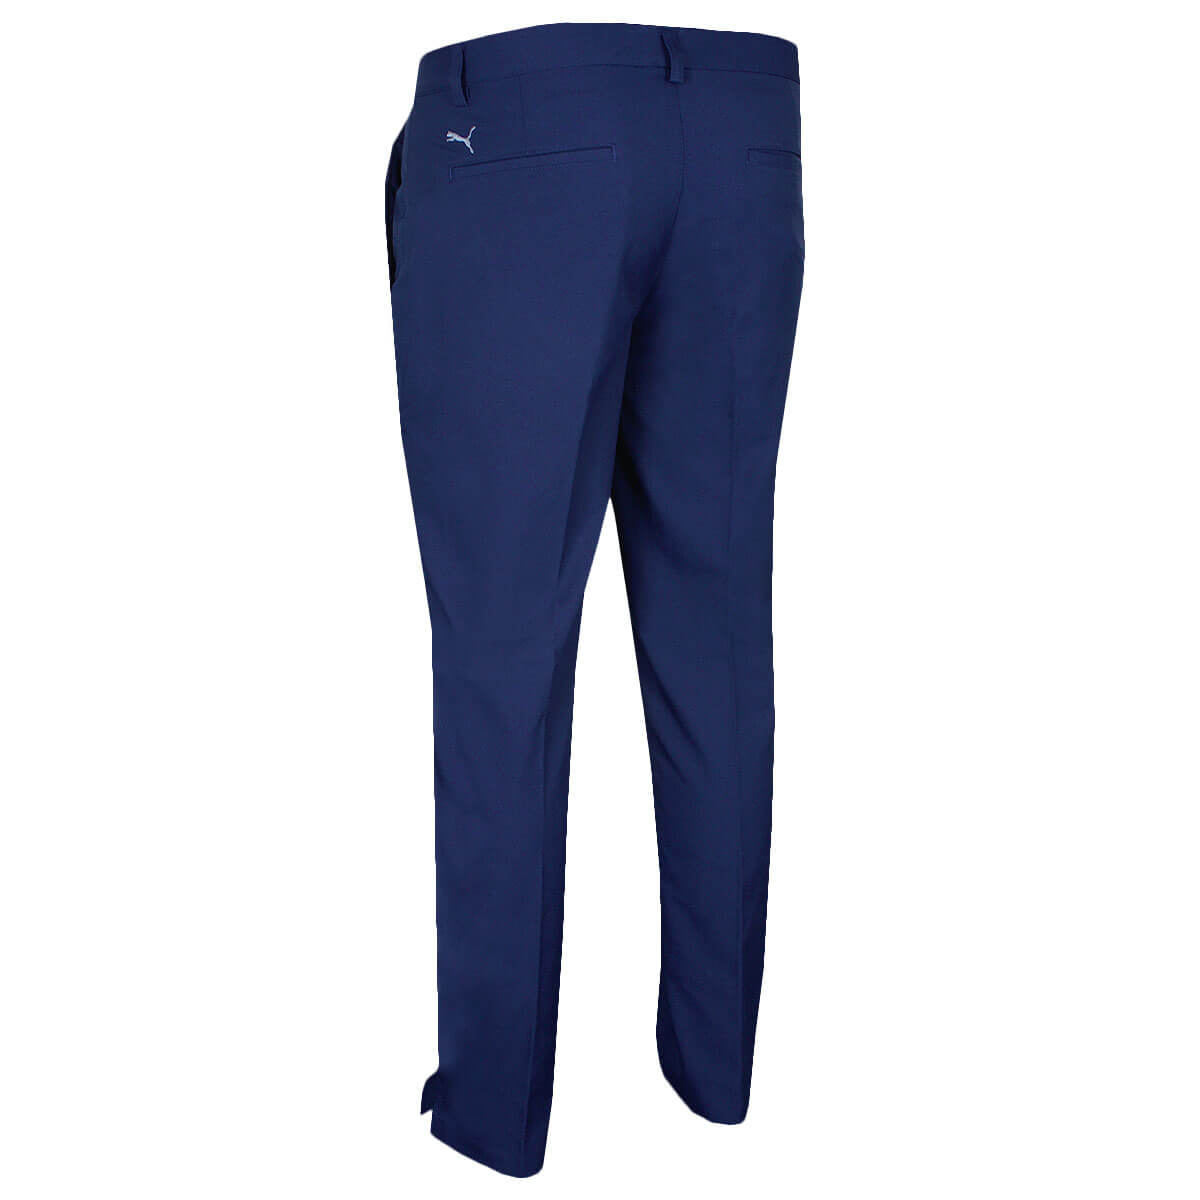 Puma-Golf-Mens-Stretch-Pounce-Golf-Stretch-Wicking-Trousers-45-OFF-RRP thumbnail 6